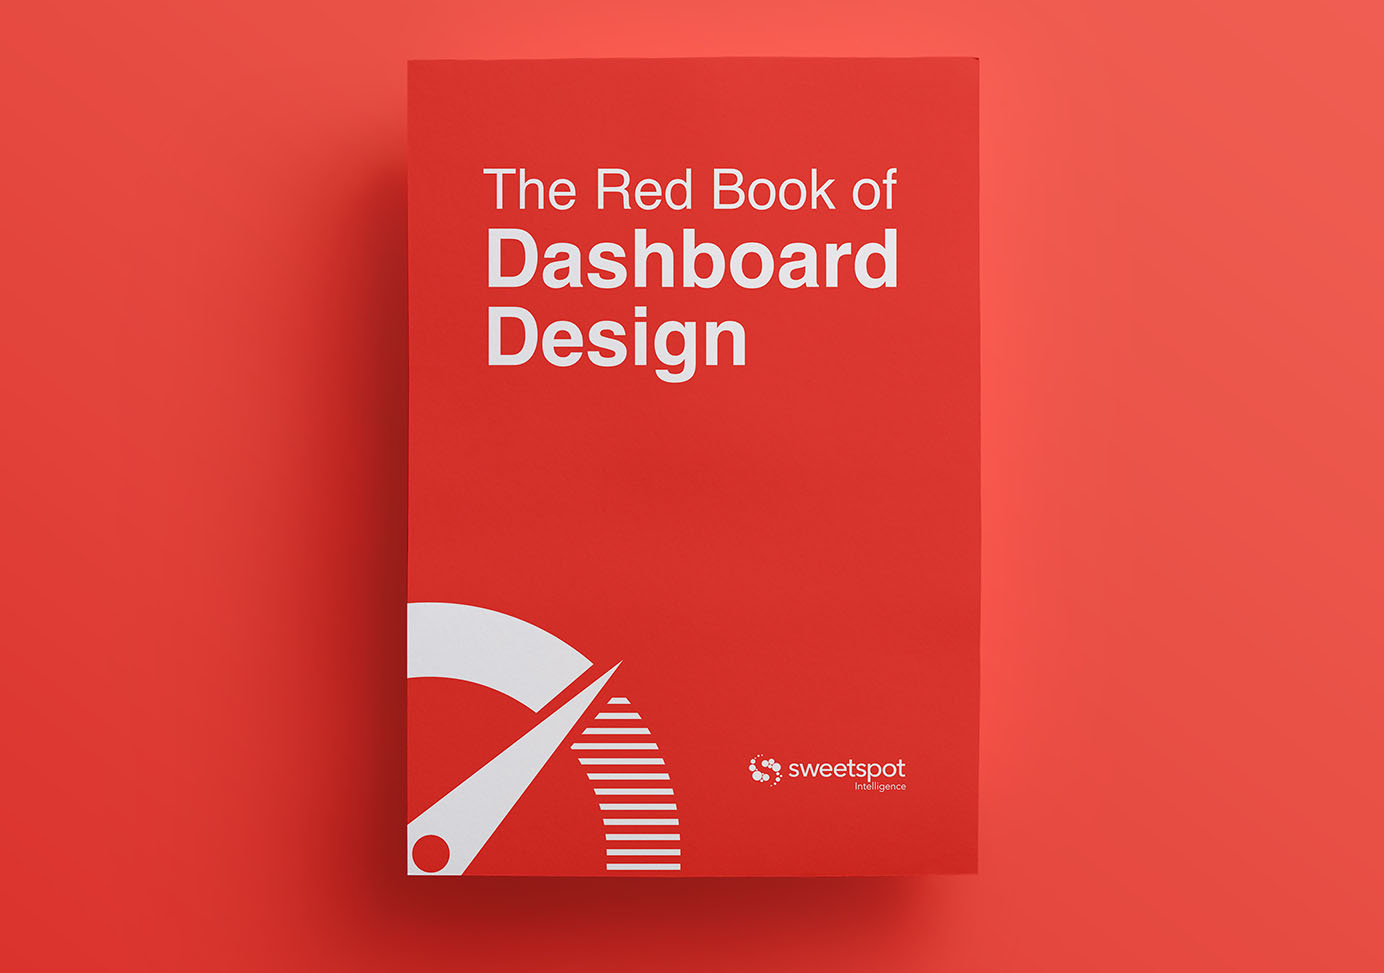 Book Cover Design Book ~ Sweetspot the red book of dashboard design